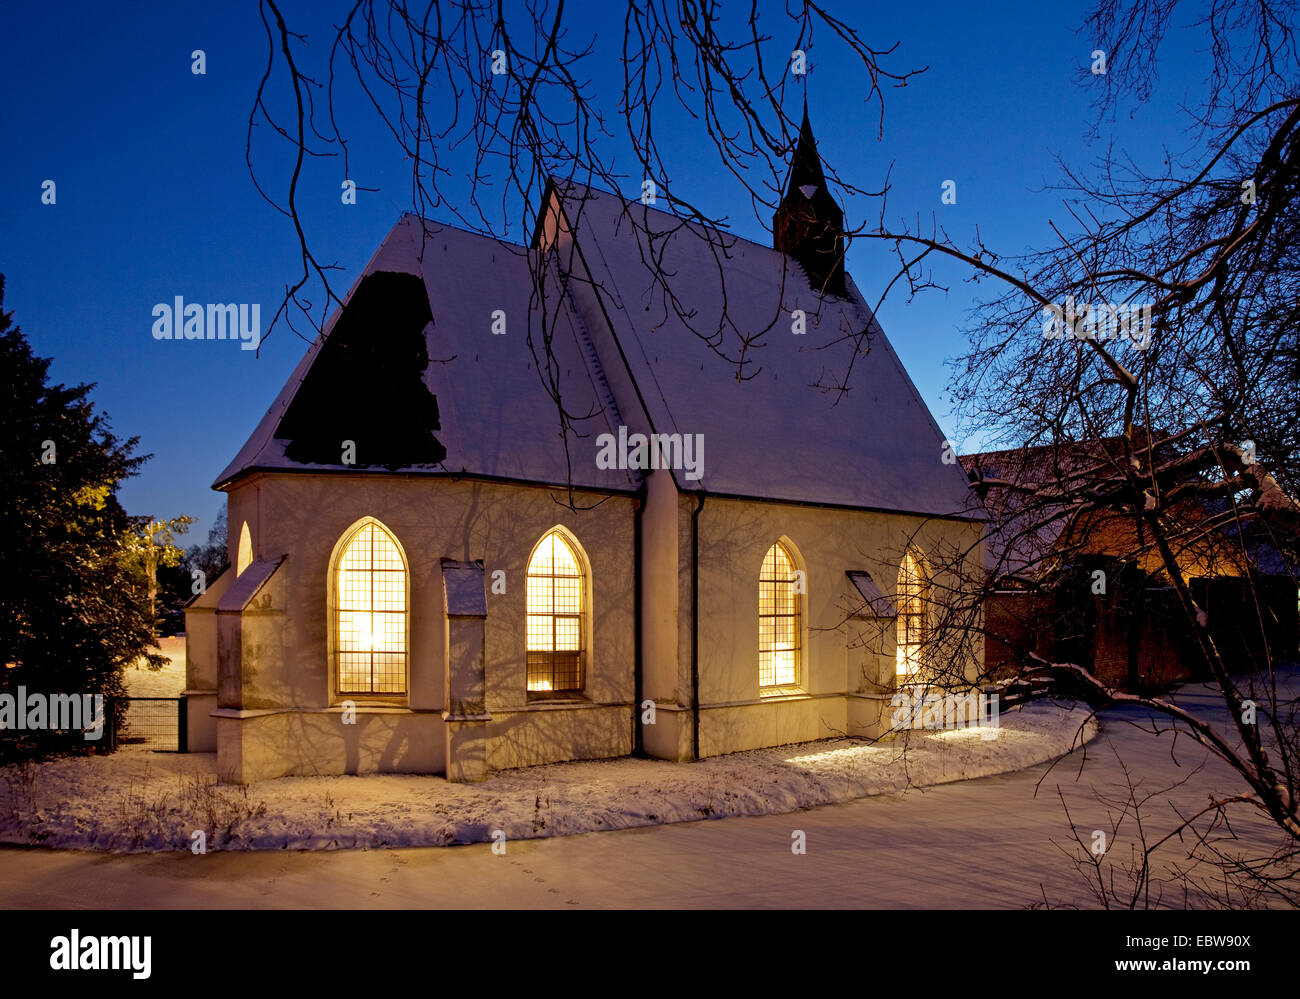 illuminated chappel of Herten castle in winter at blue our, Germany, North Rhine-Westphalia, Ruhr Area, Herten - Stock Image